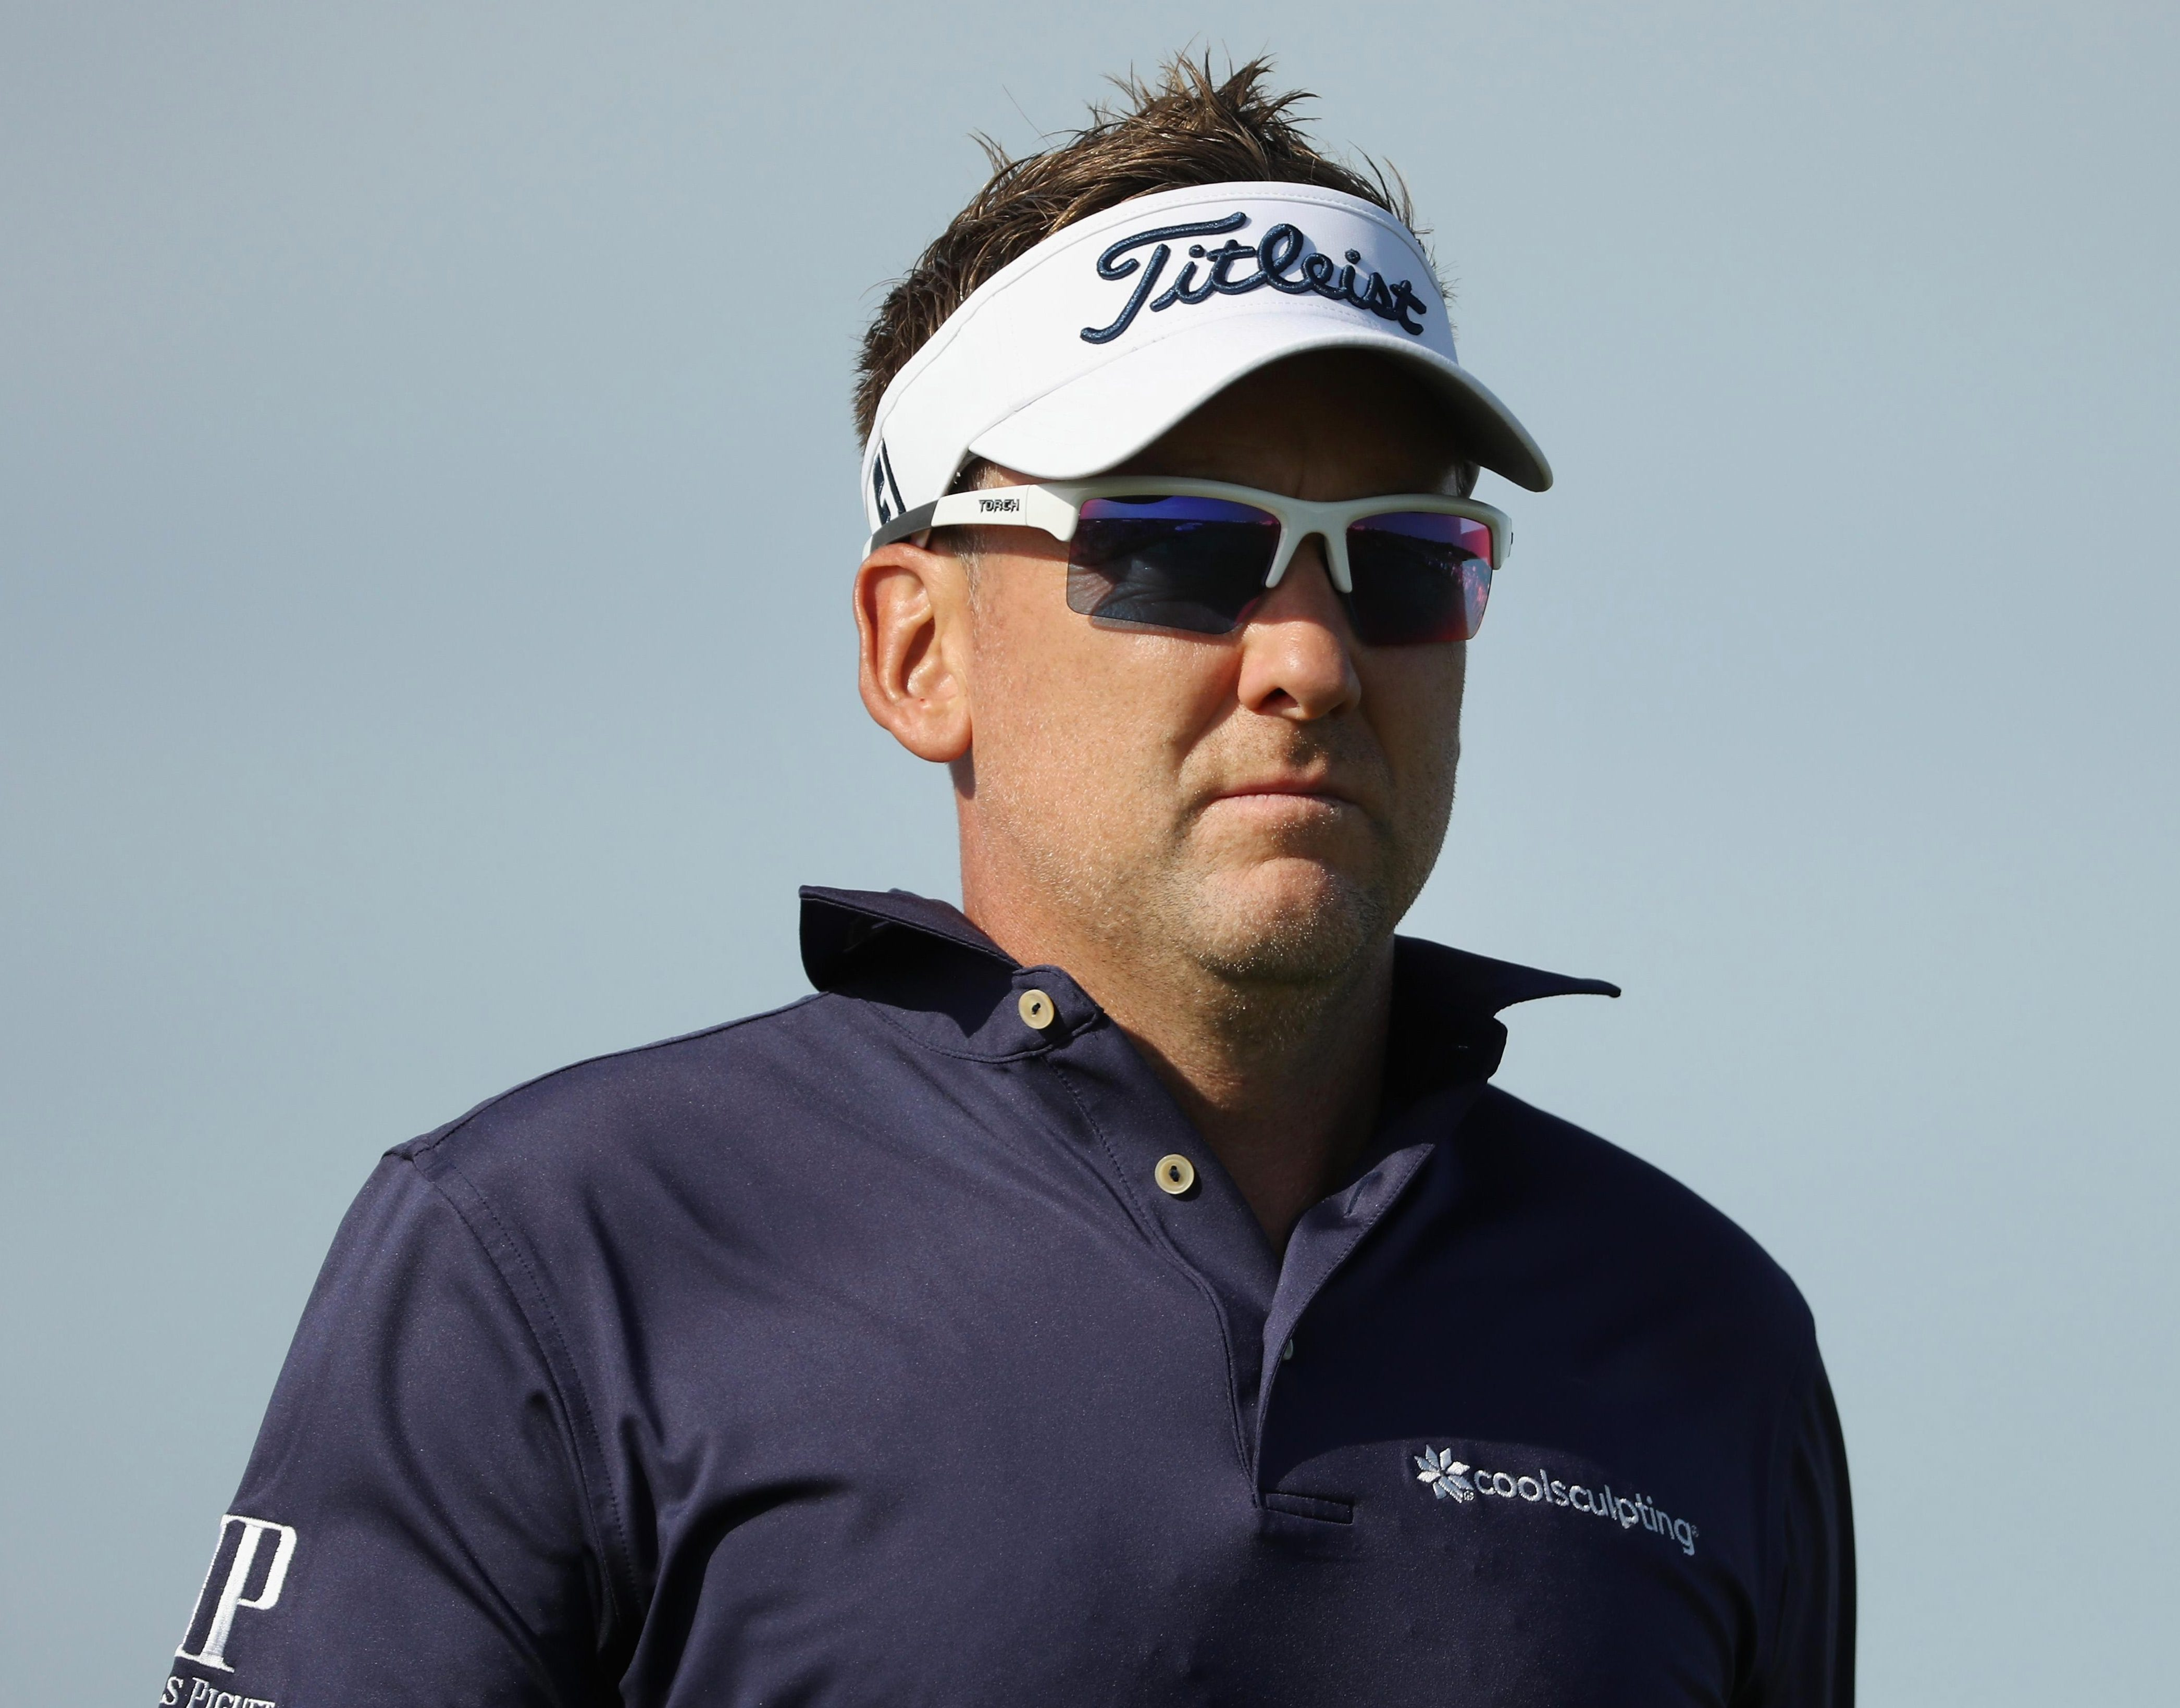 Ian Poulter raged at abusive fans and US Open organisers